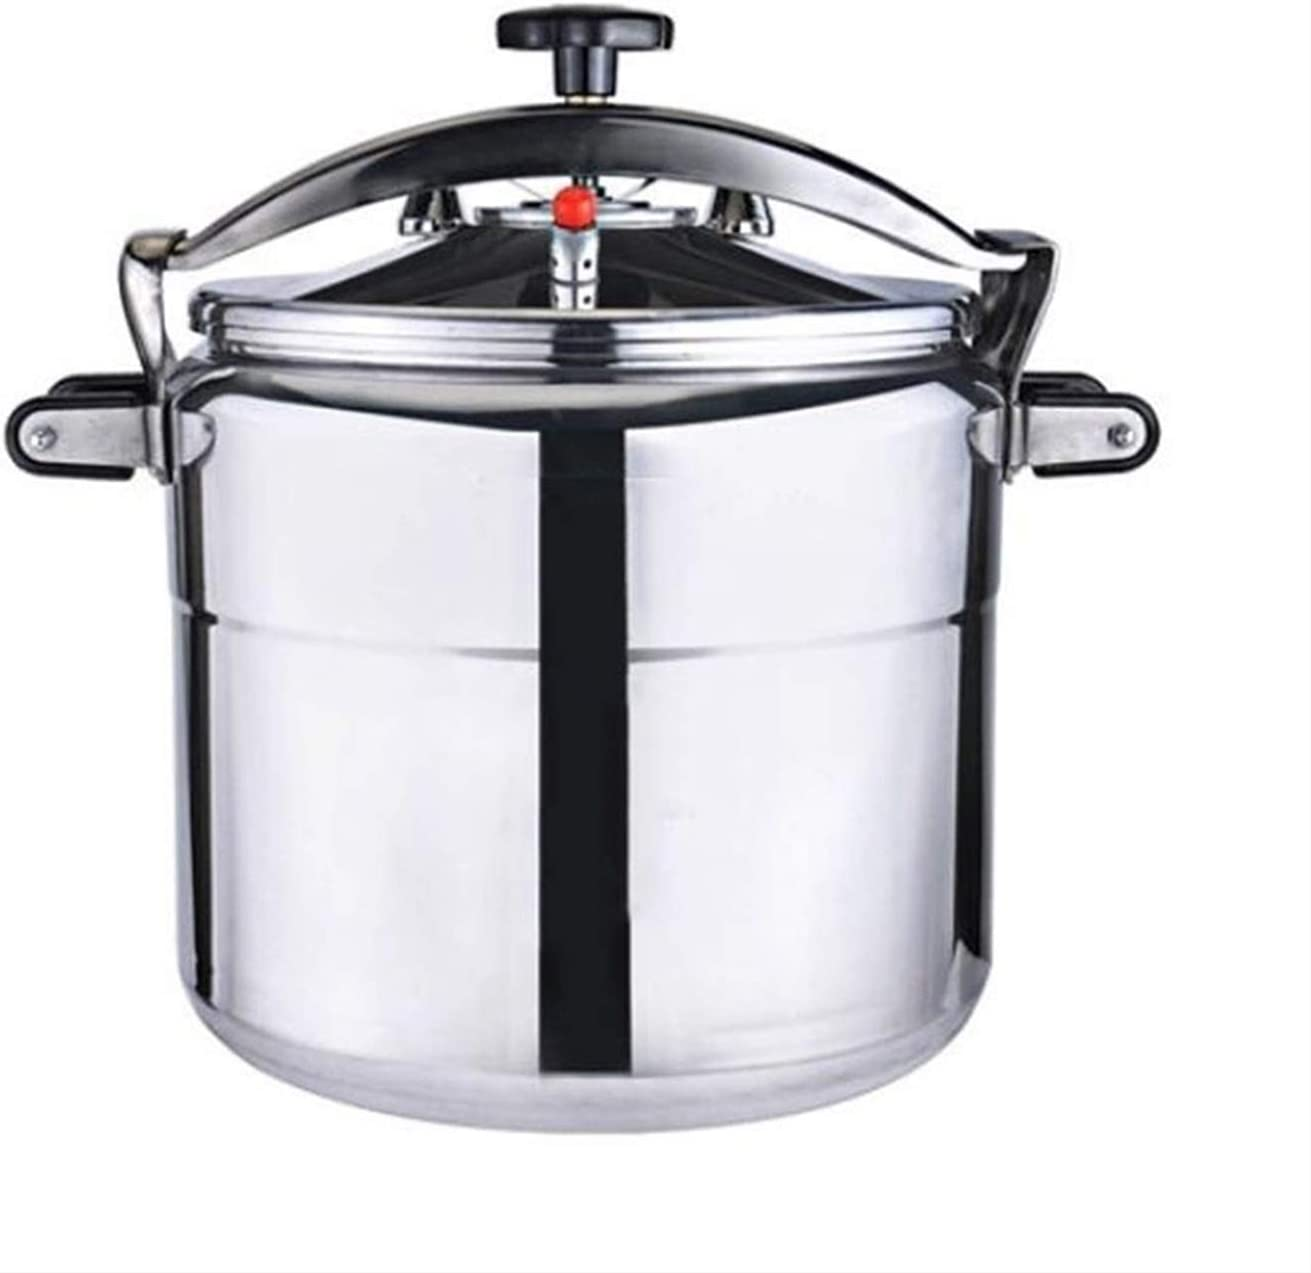 3-80L Large capacity pressure cooker, commercial soup pot, household steamer, hotel pot, ordinary kitchen utensils, can be used for kitchen, restaurant and hotel supplies